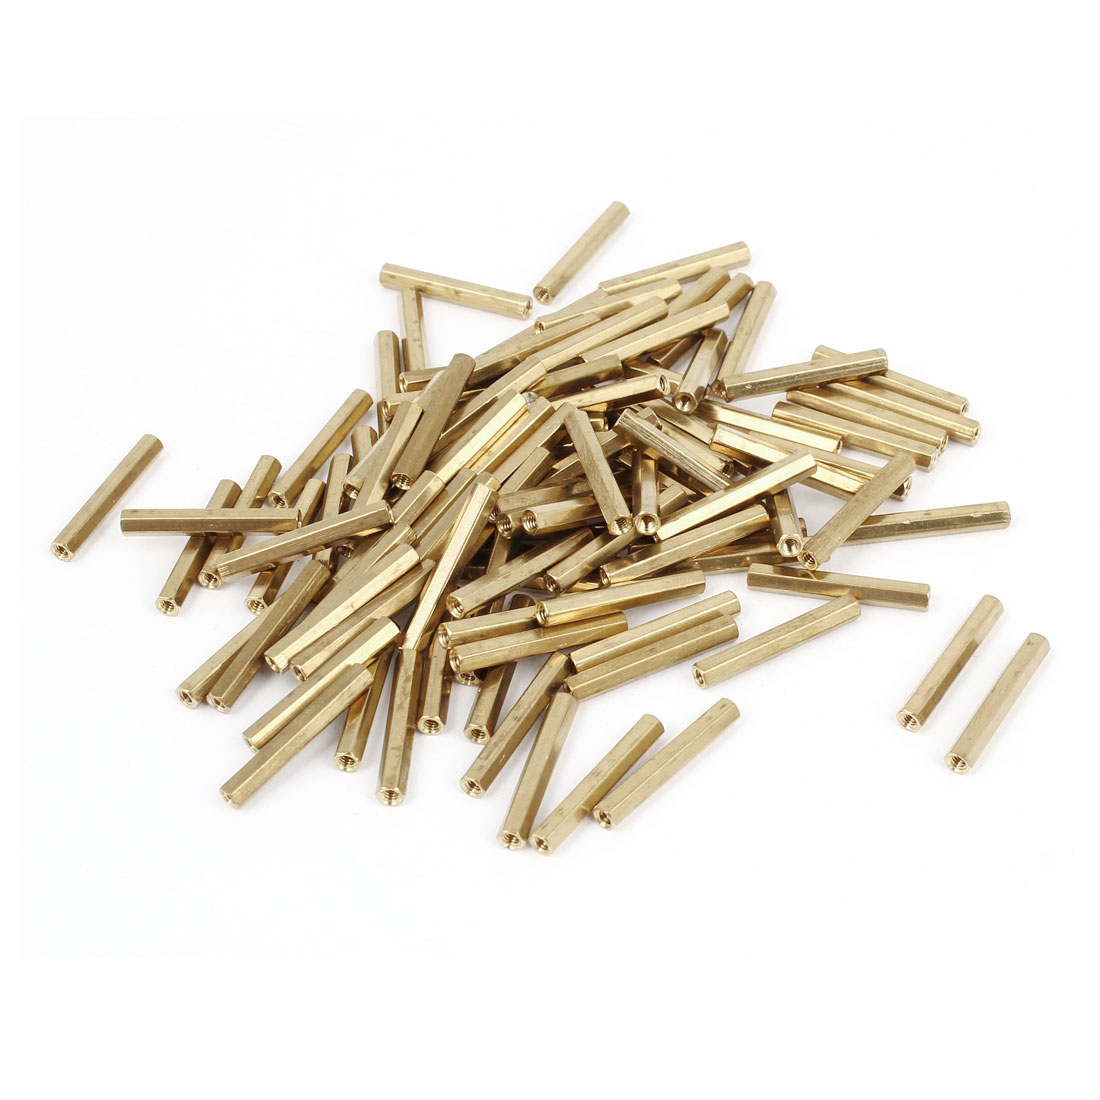 100Pcs M2x21mm Brass Column Female Stand-off Hexagonal Spacer M2 Thread Dia